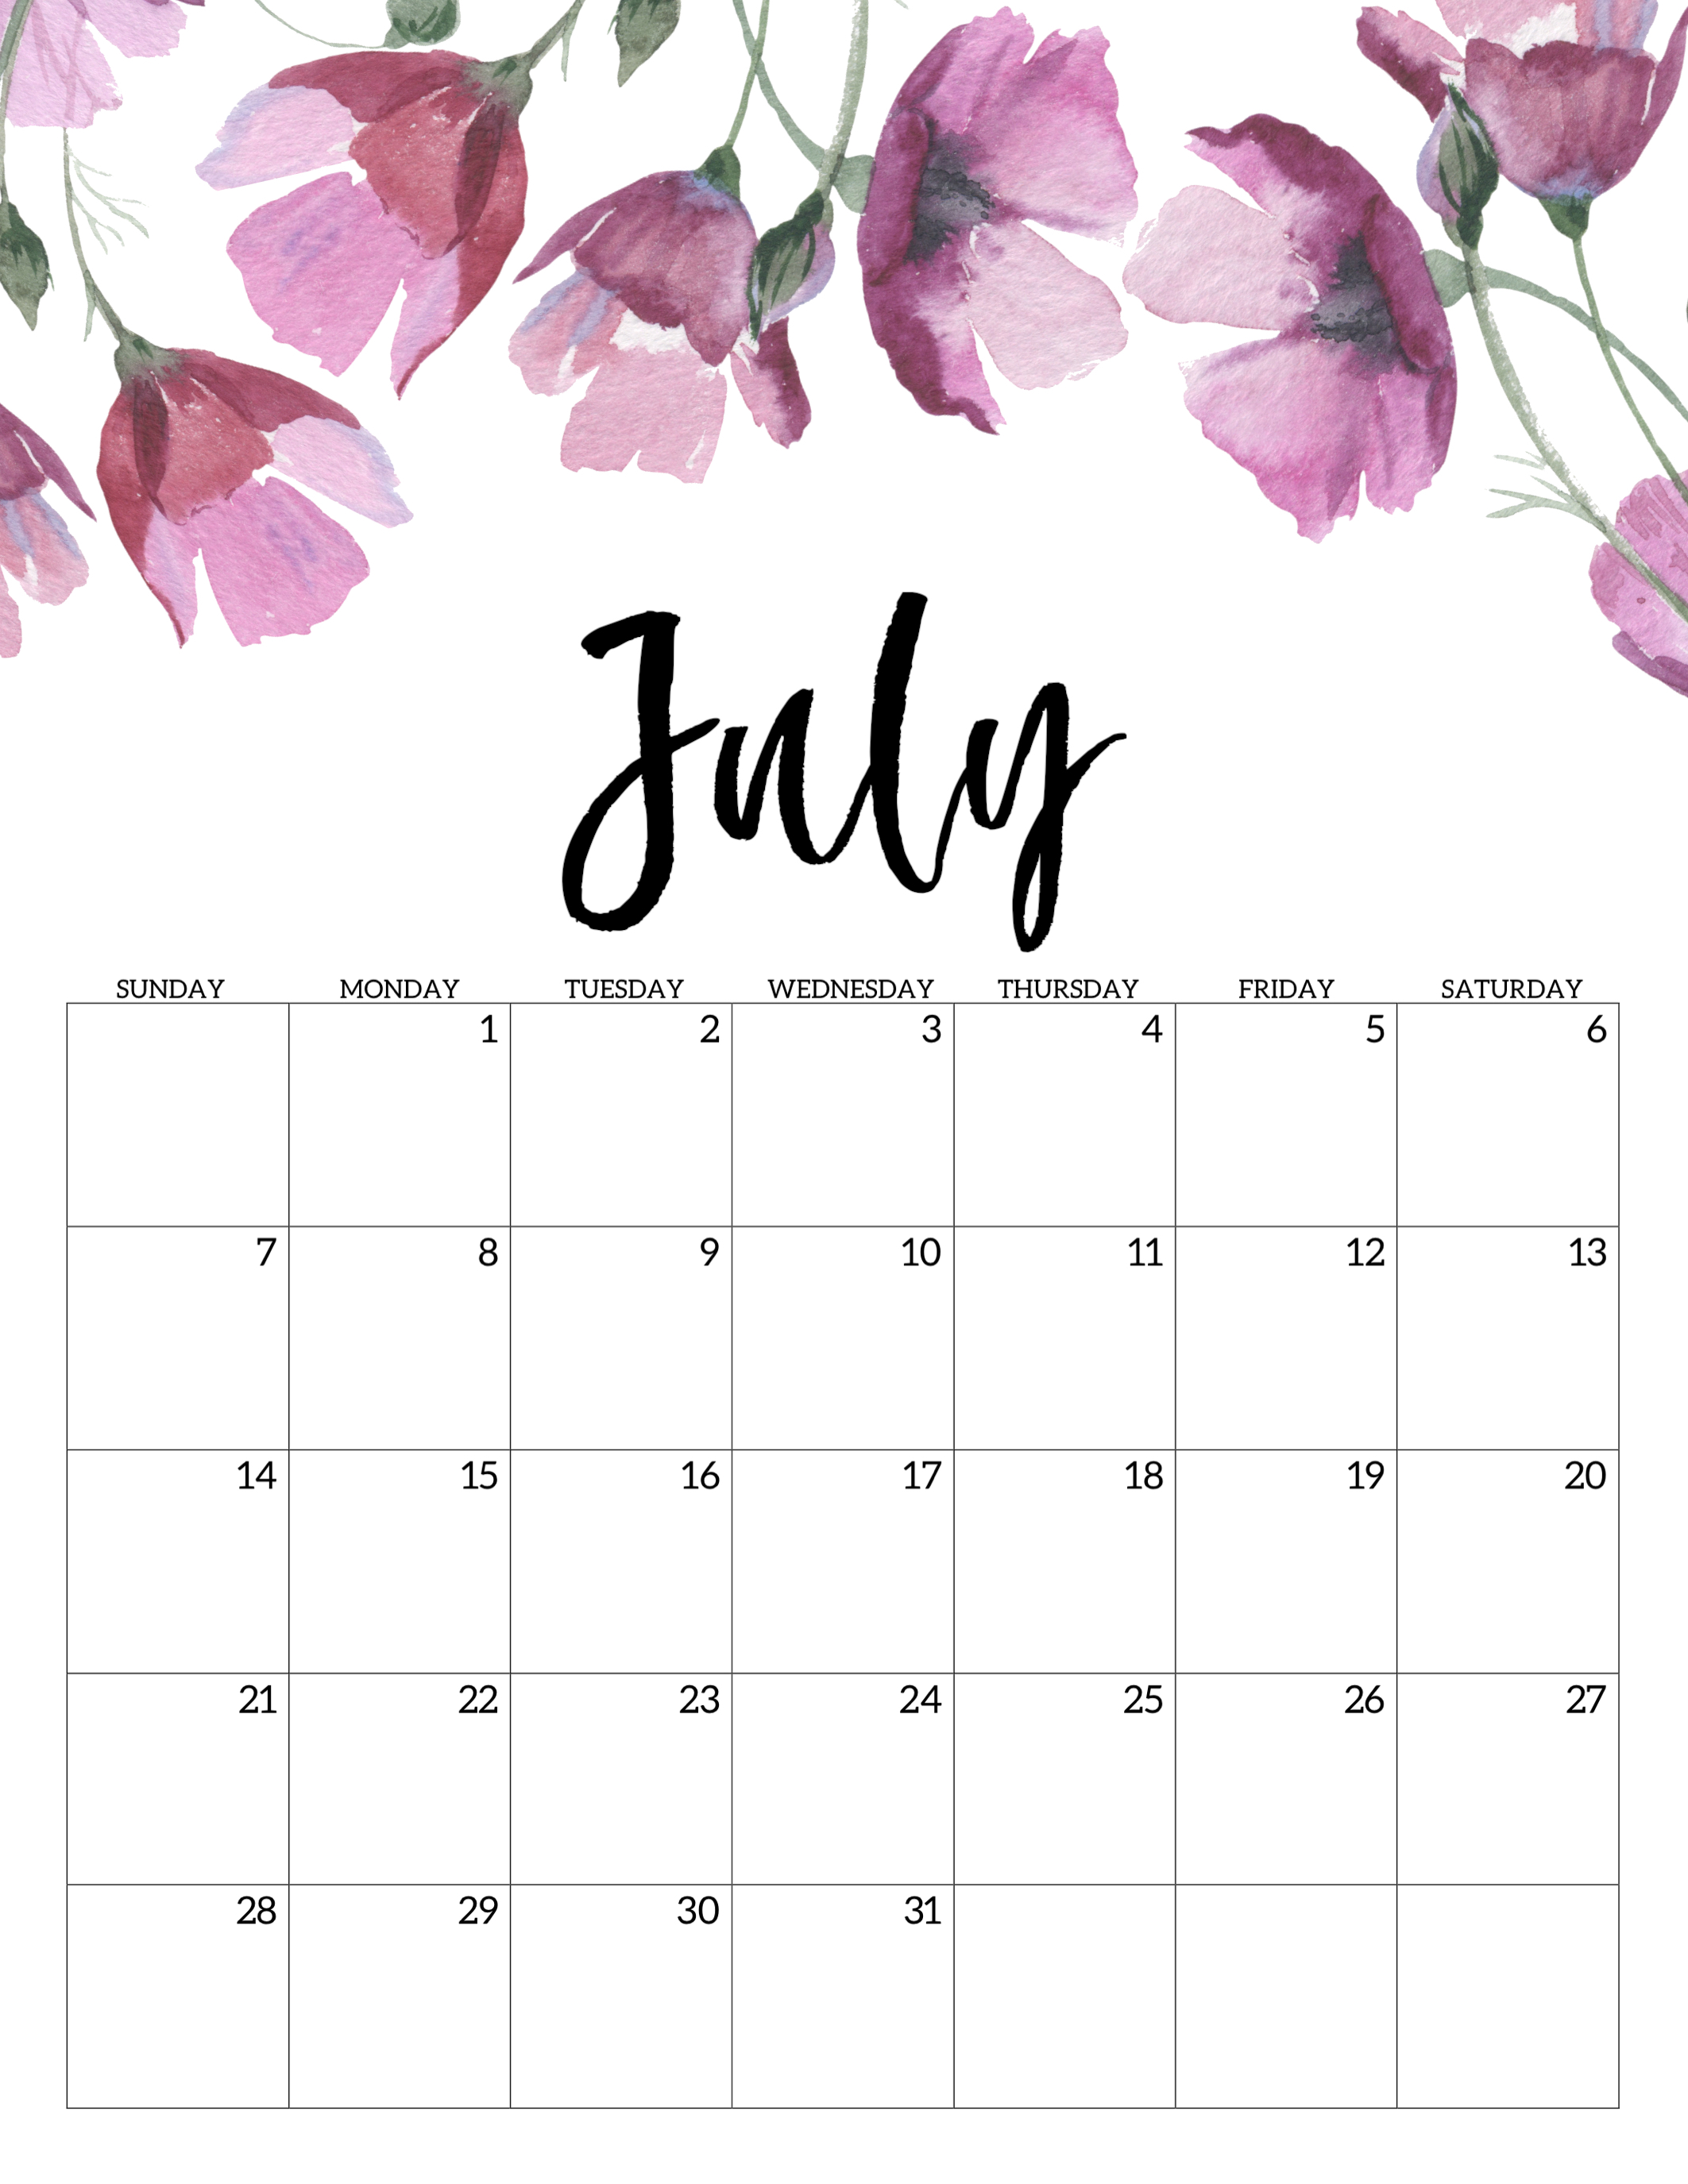 image relating to Cute Printable Calendars named No cost Printable Calendar 2019 - Floral - Paper Path Style and design